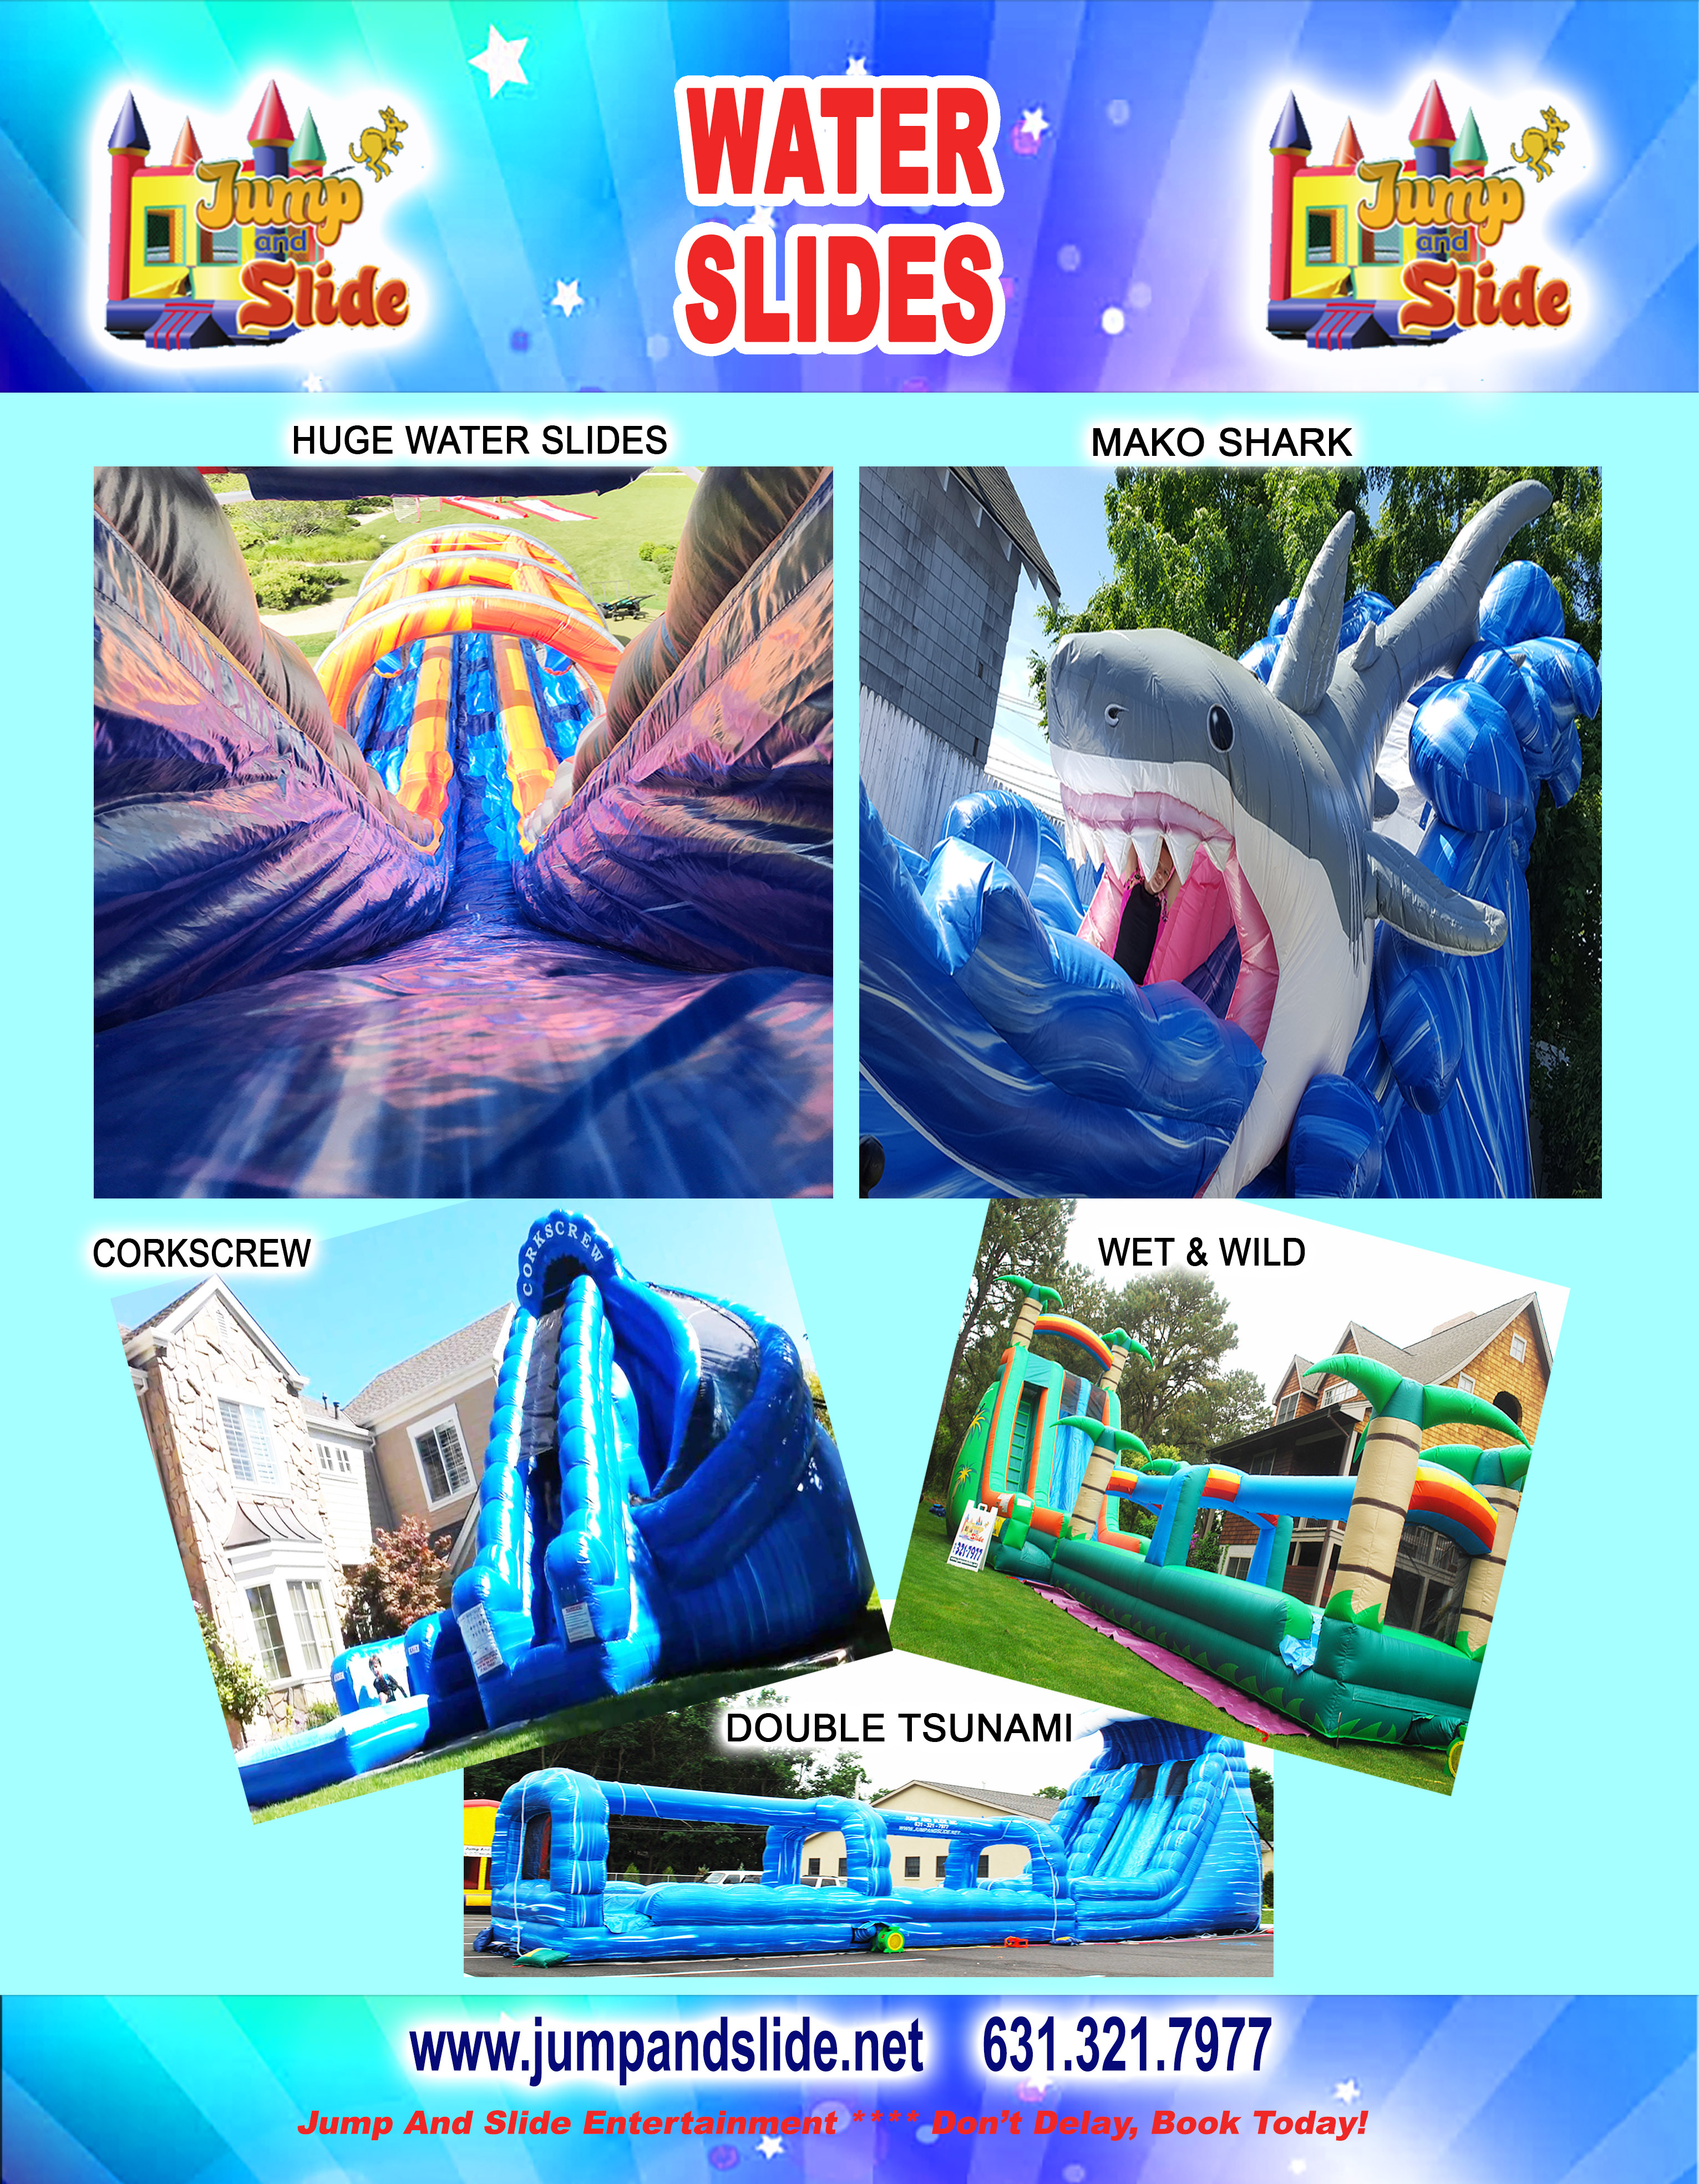 Jump and Slide Entertainment